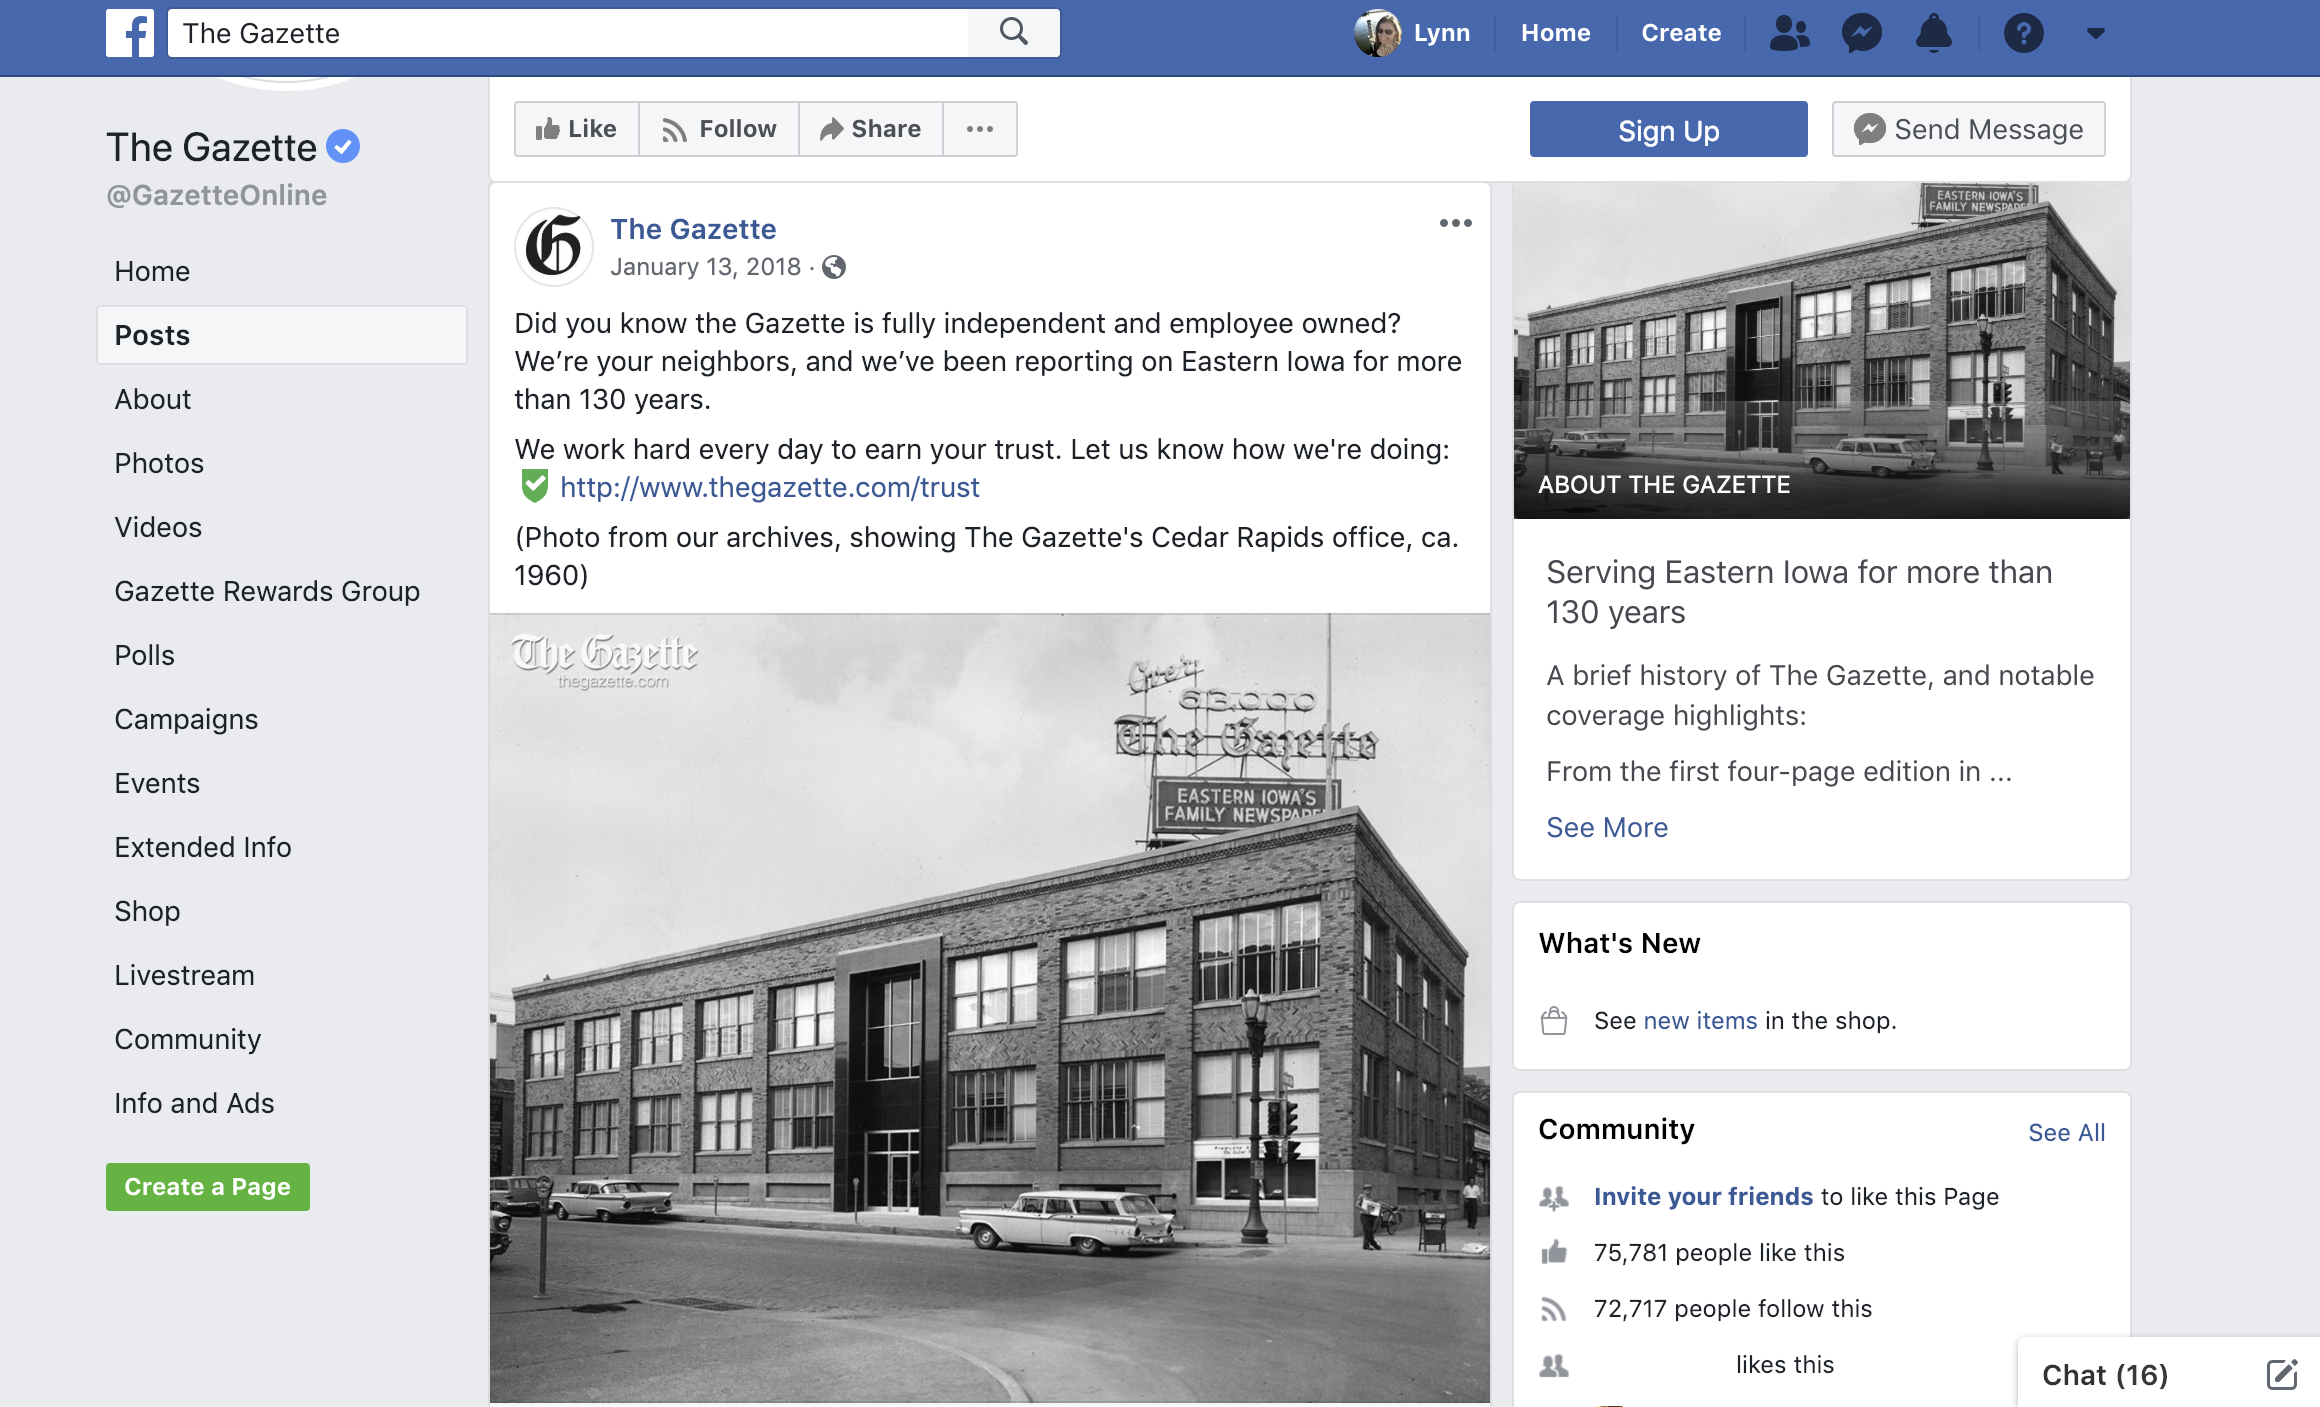 The Gazette used a historic photo of their newsroom to highlight their connection to the community. The news organization did something similar before, but saw a more positive response when using a photo from the past. The post also asked users for feedback by including a link to a Google Form.